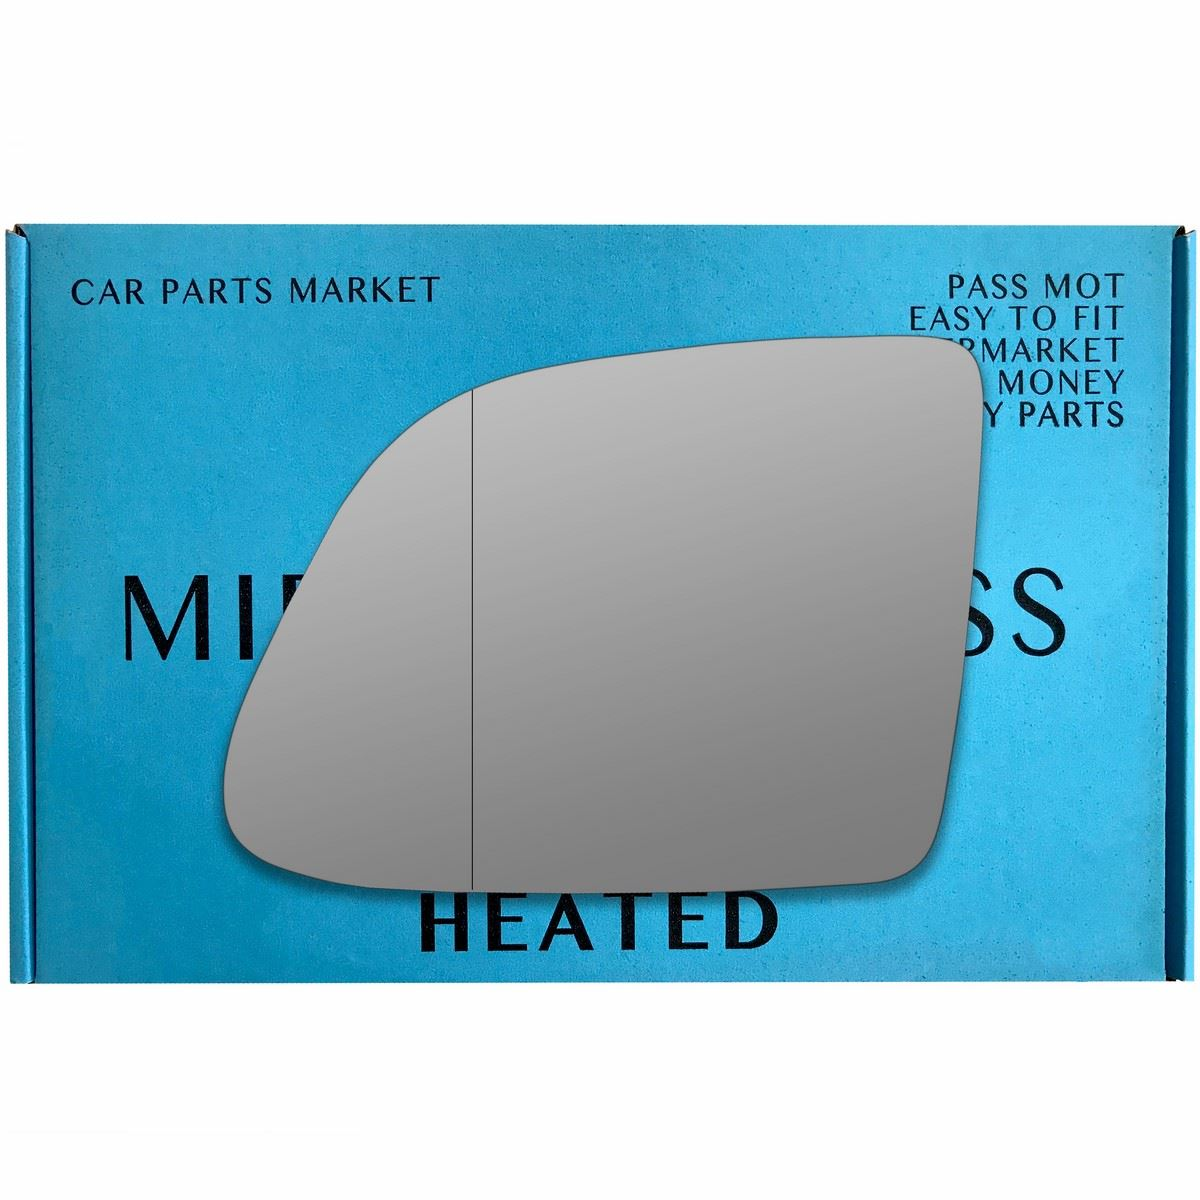 driver side wing door clip on mirror glass for Seat Leon 1999-2003 Heated Right hand